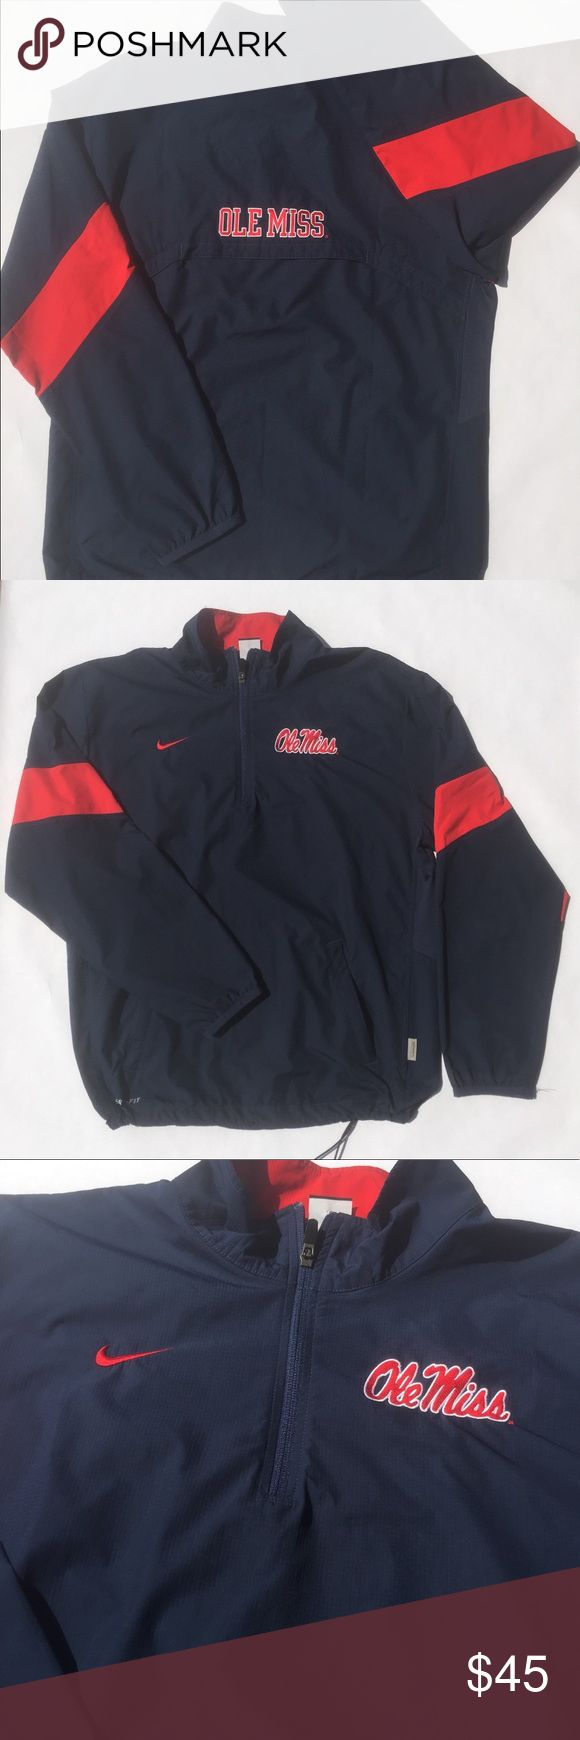 Ole Miss University Nike Storm Fit Pullover Sz S Preowned Ole Miss Nike Storm Fit Windproof Pullover Jacket Sz: Small Color: Blue and Red  Condition: Excellent Measurements:  - Length: 28 1/4 in  - Chest: 23.5 in  - Shoulders: 20.5 in  - Sleeves: 26 in Nike Jackets & Coats Windbreakers